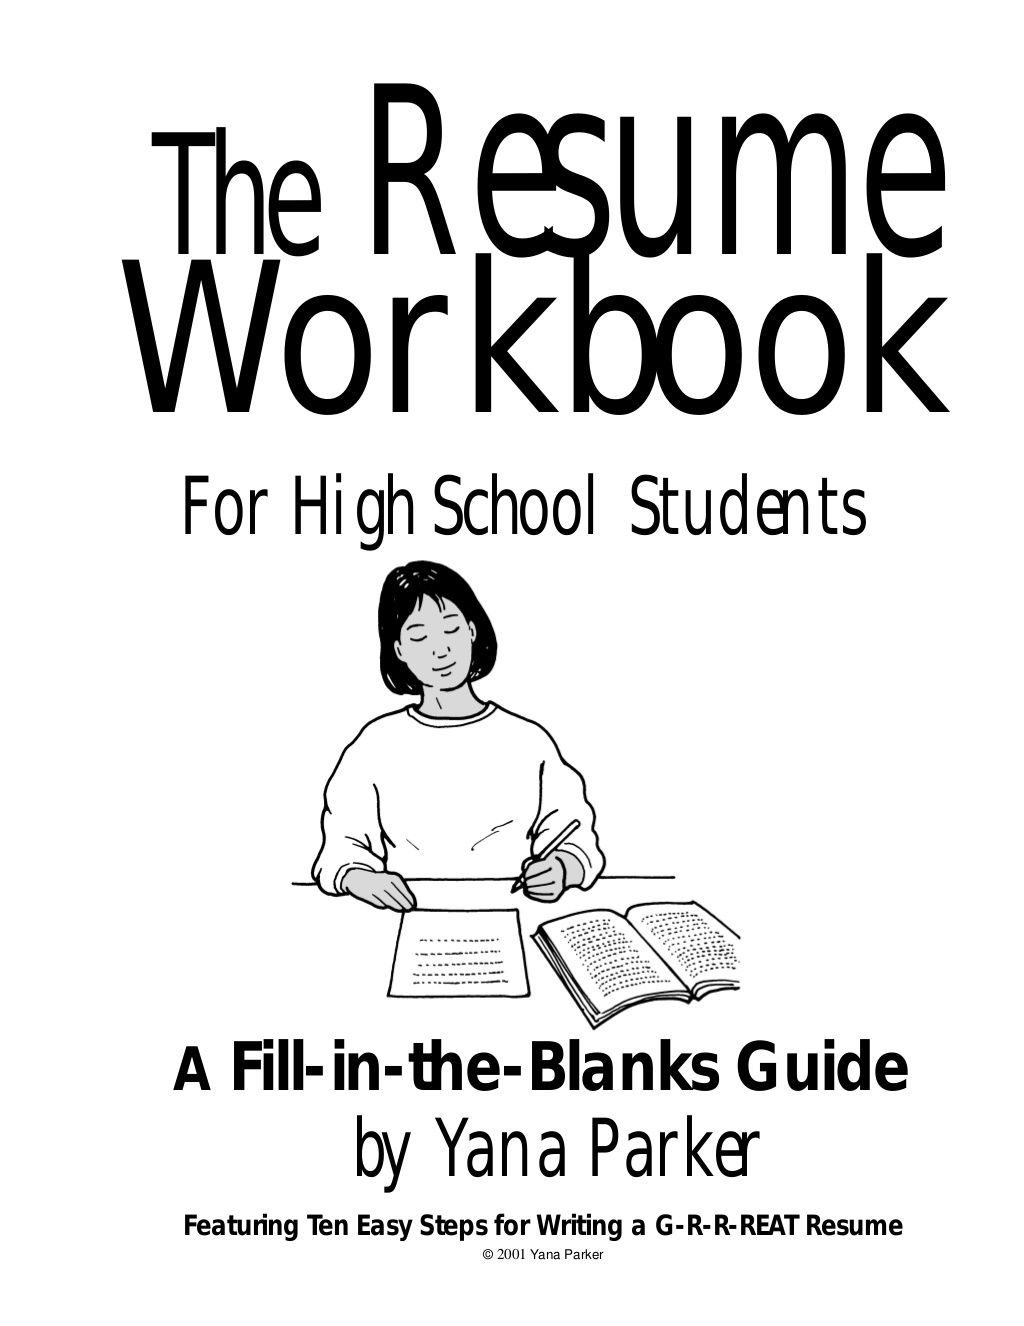 The Resume Workbook For High School Students A Fill-in-the-Blanks Guide